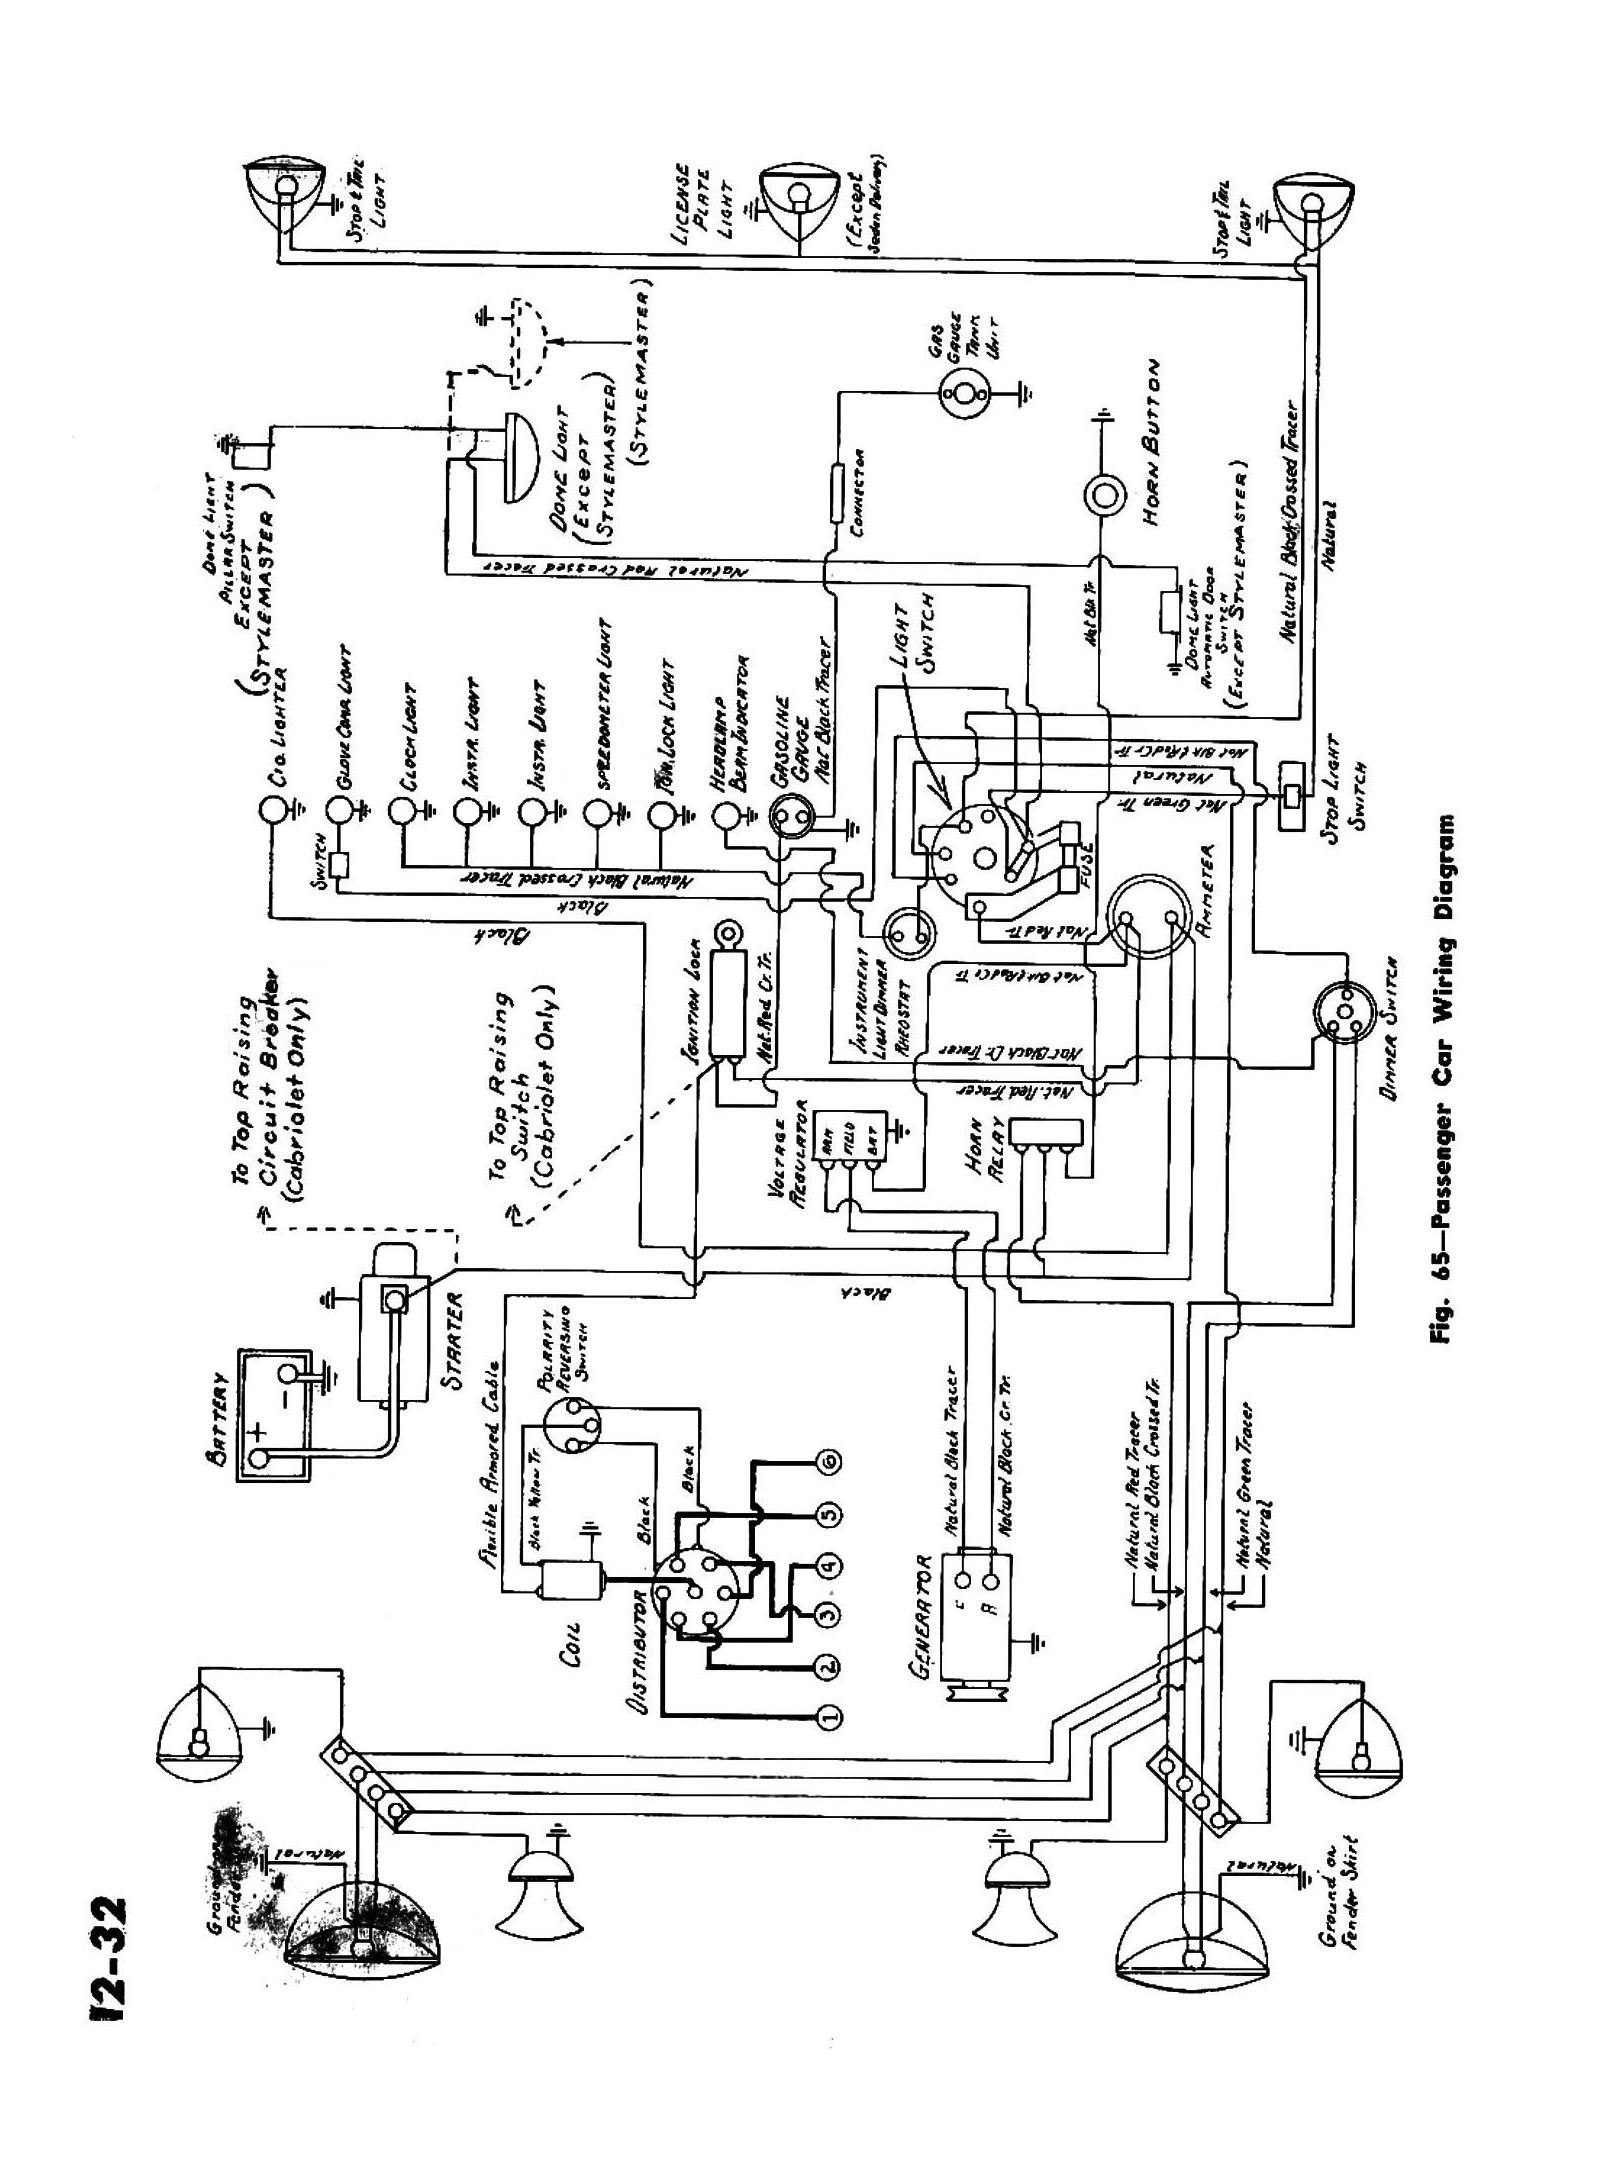 45car chevy wiring diagrams electrical wiring diagrams for cars at gsmx.co